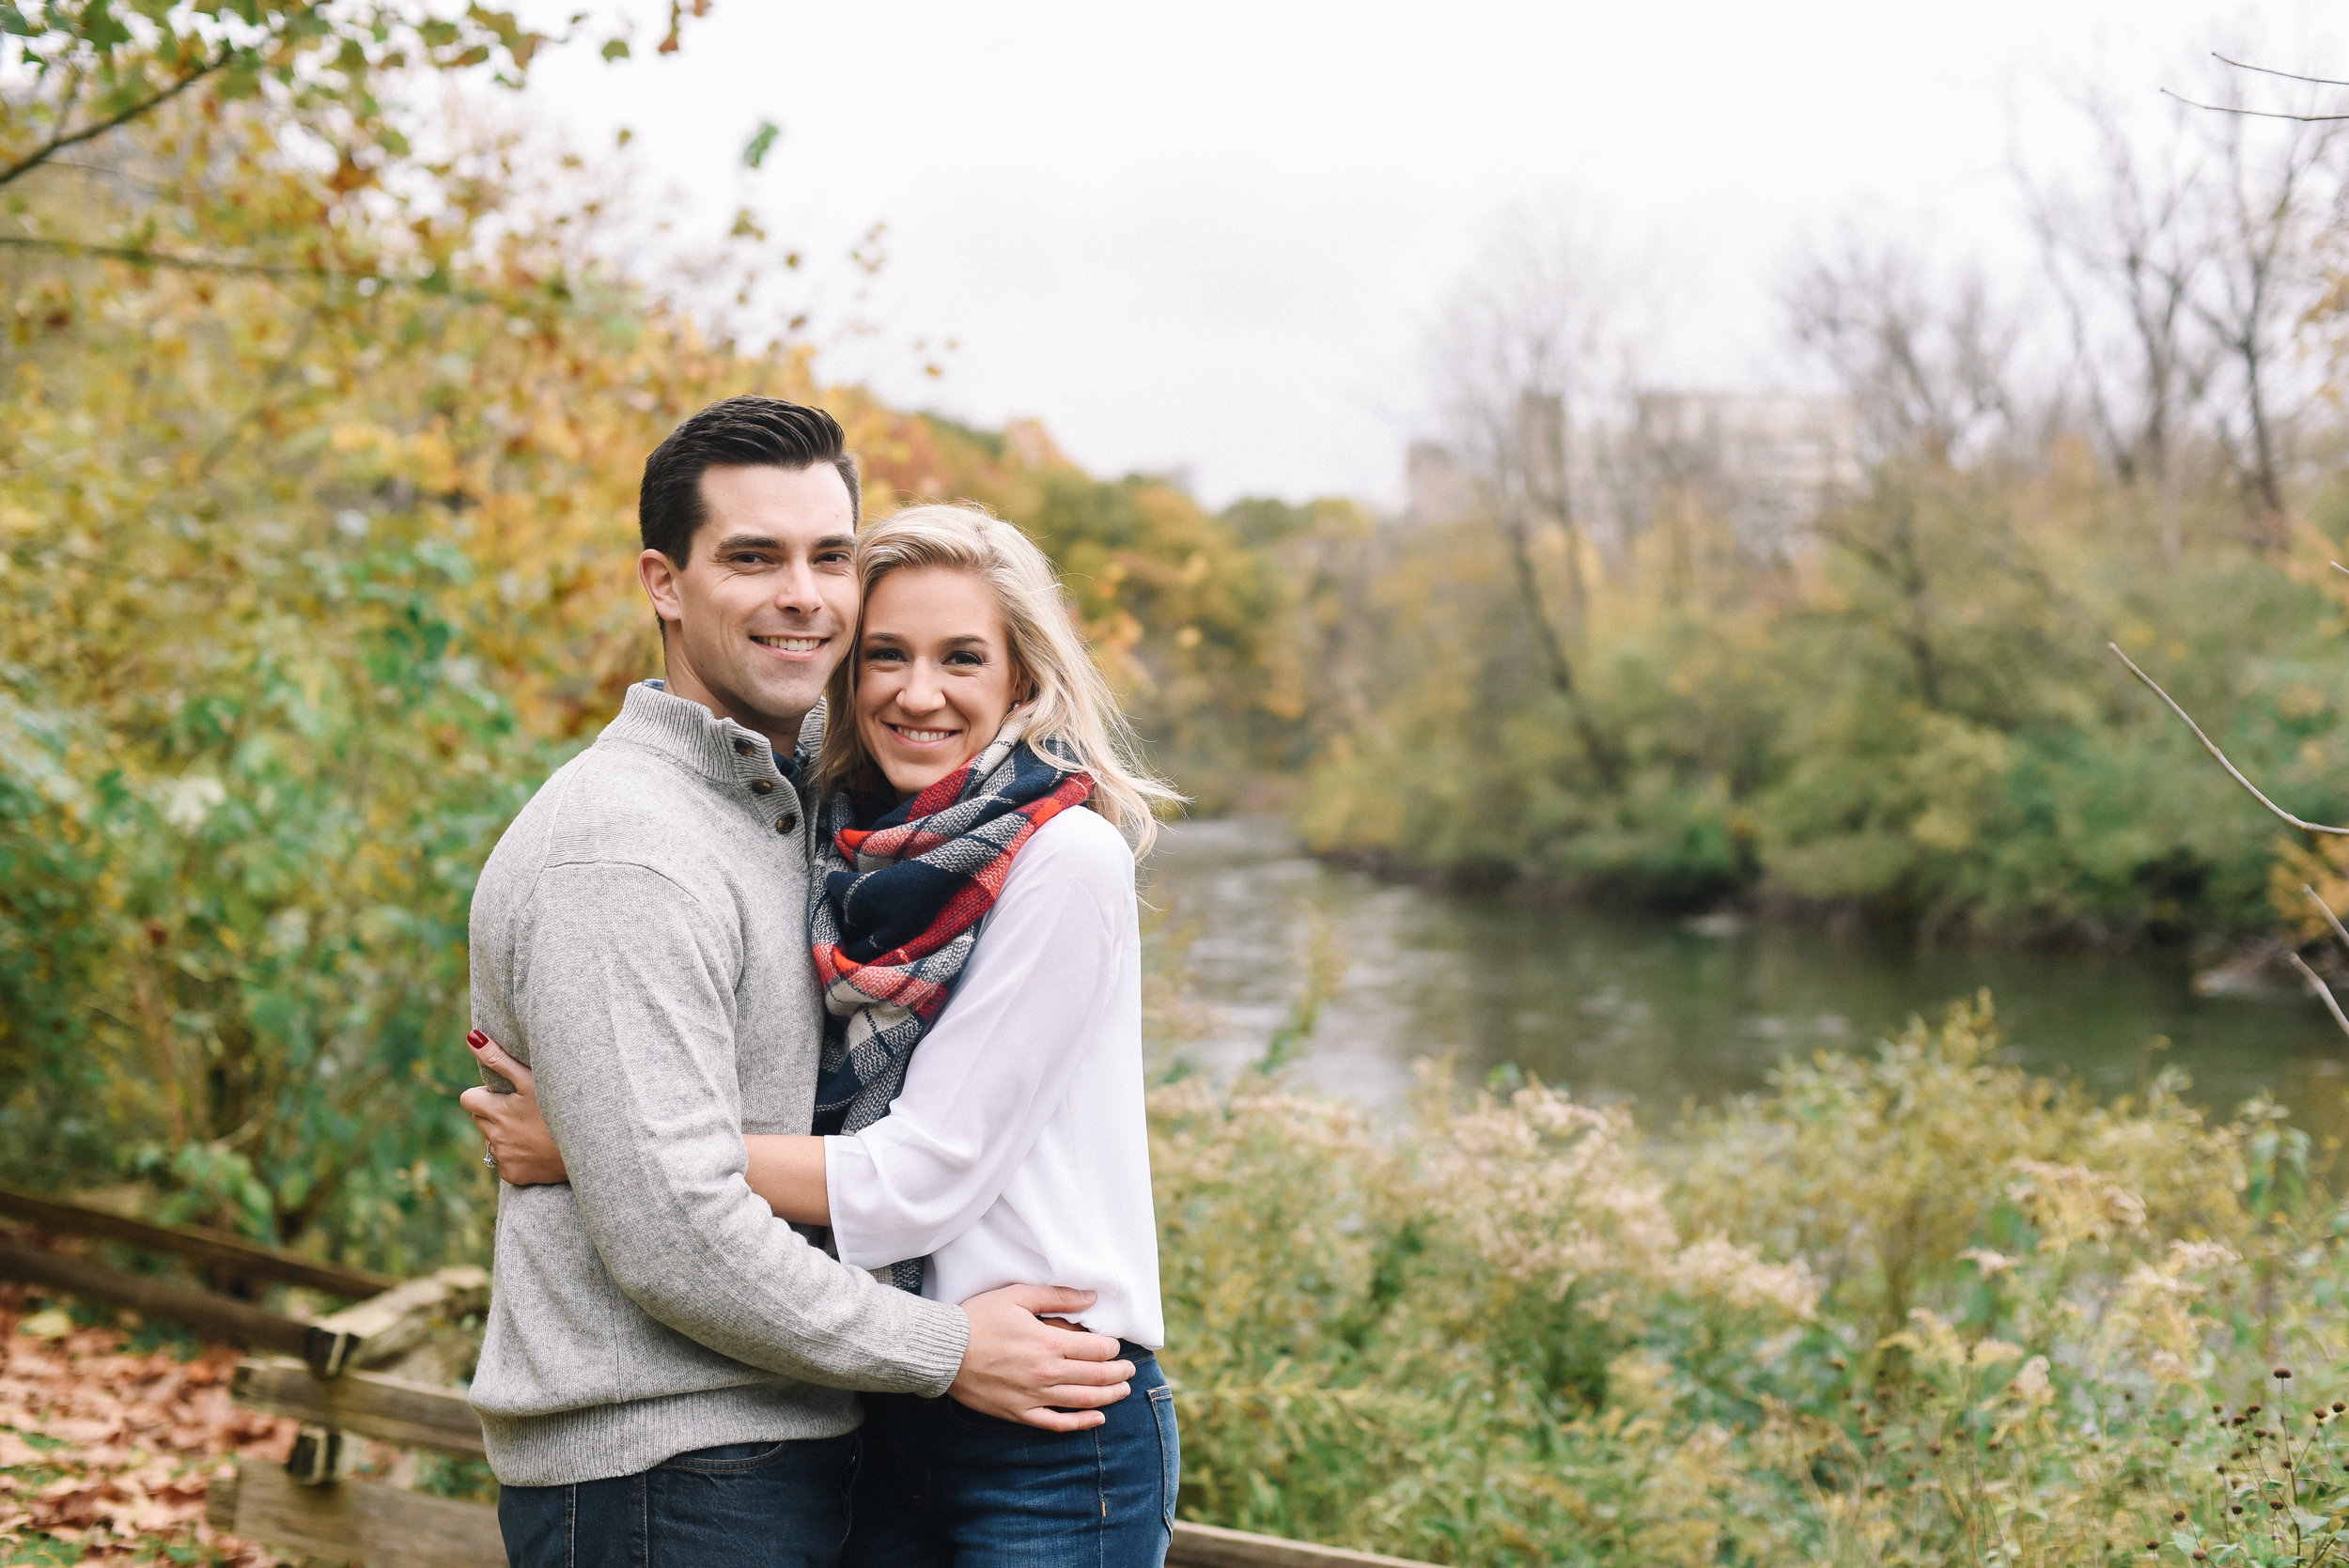 Downtown_Ann_Arbor_Arboretum_Engagement_Photos-1.jpg